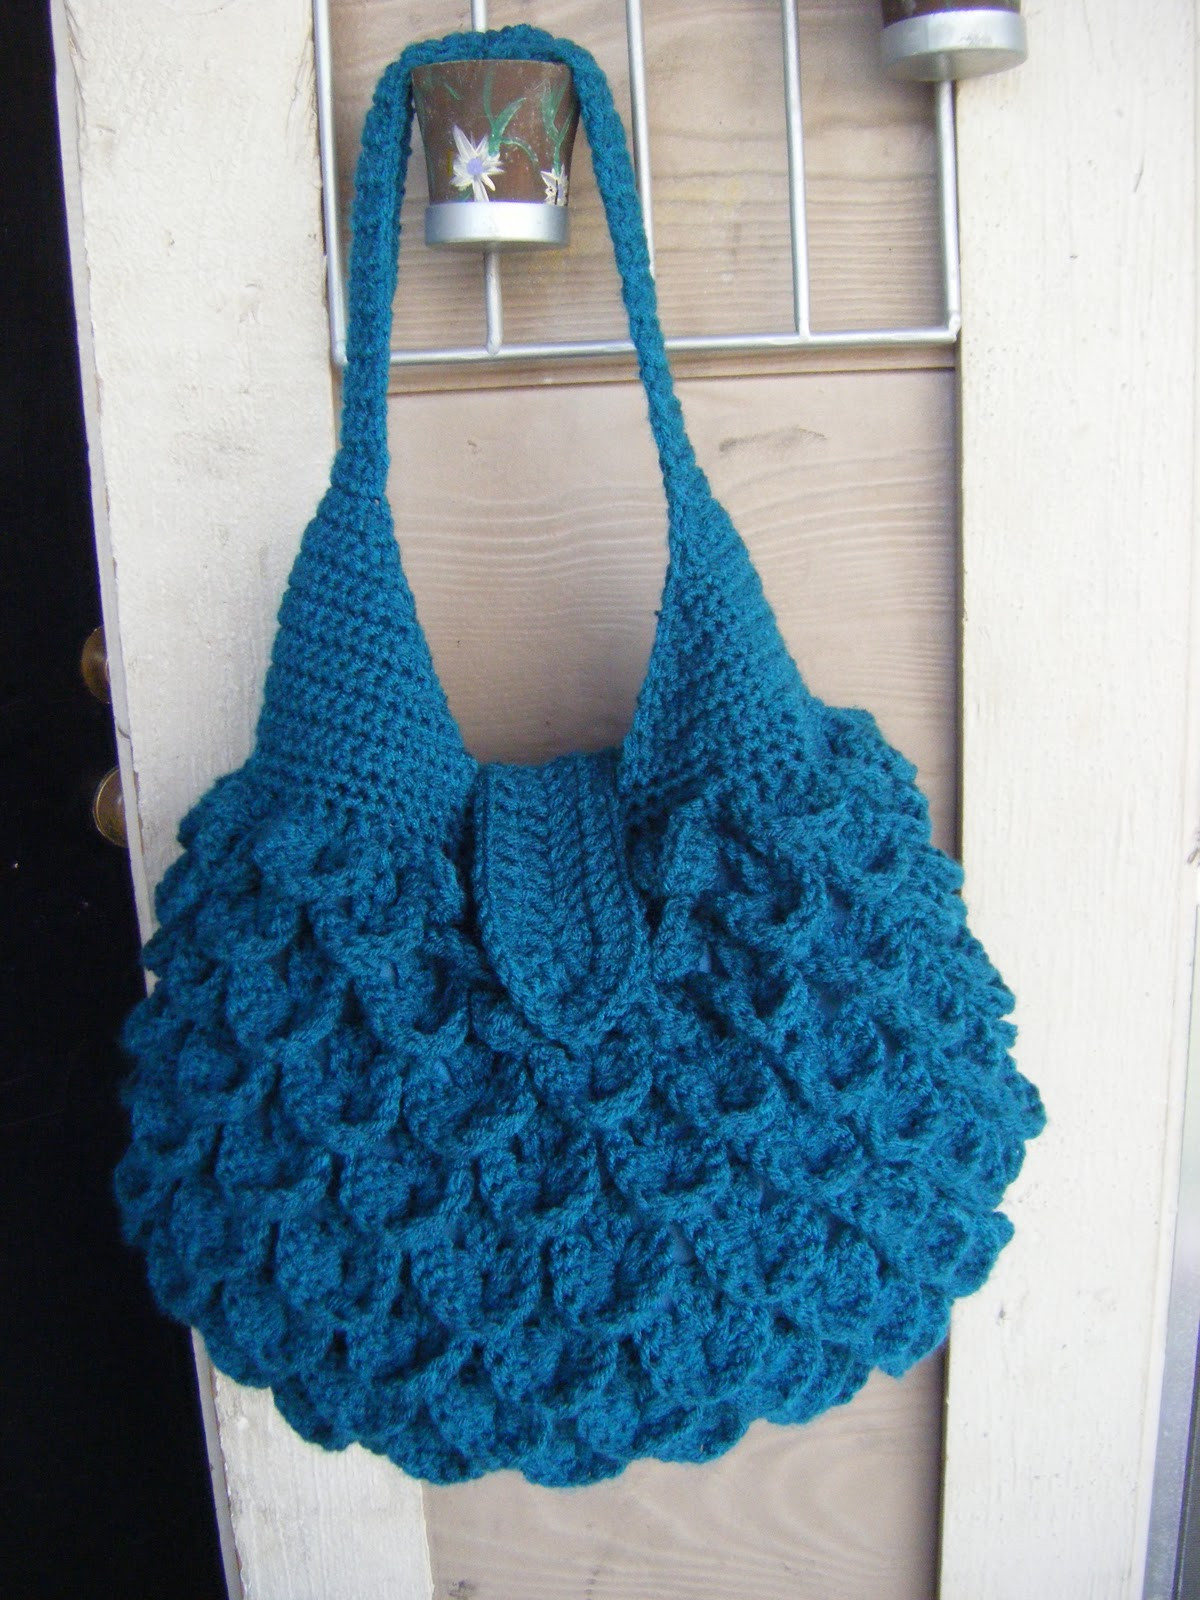 Crochet Backpack Pattern Beautiful Crochet Shopping Bag Pattern – Crochet Club Of Perfect 44 Pictures Crochet Backpack Pattern